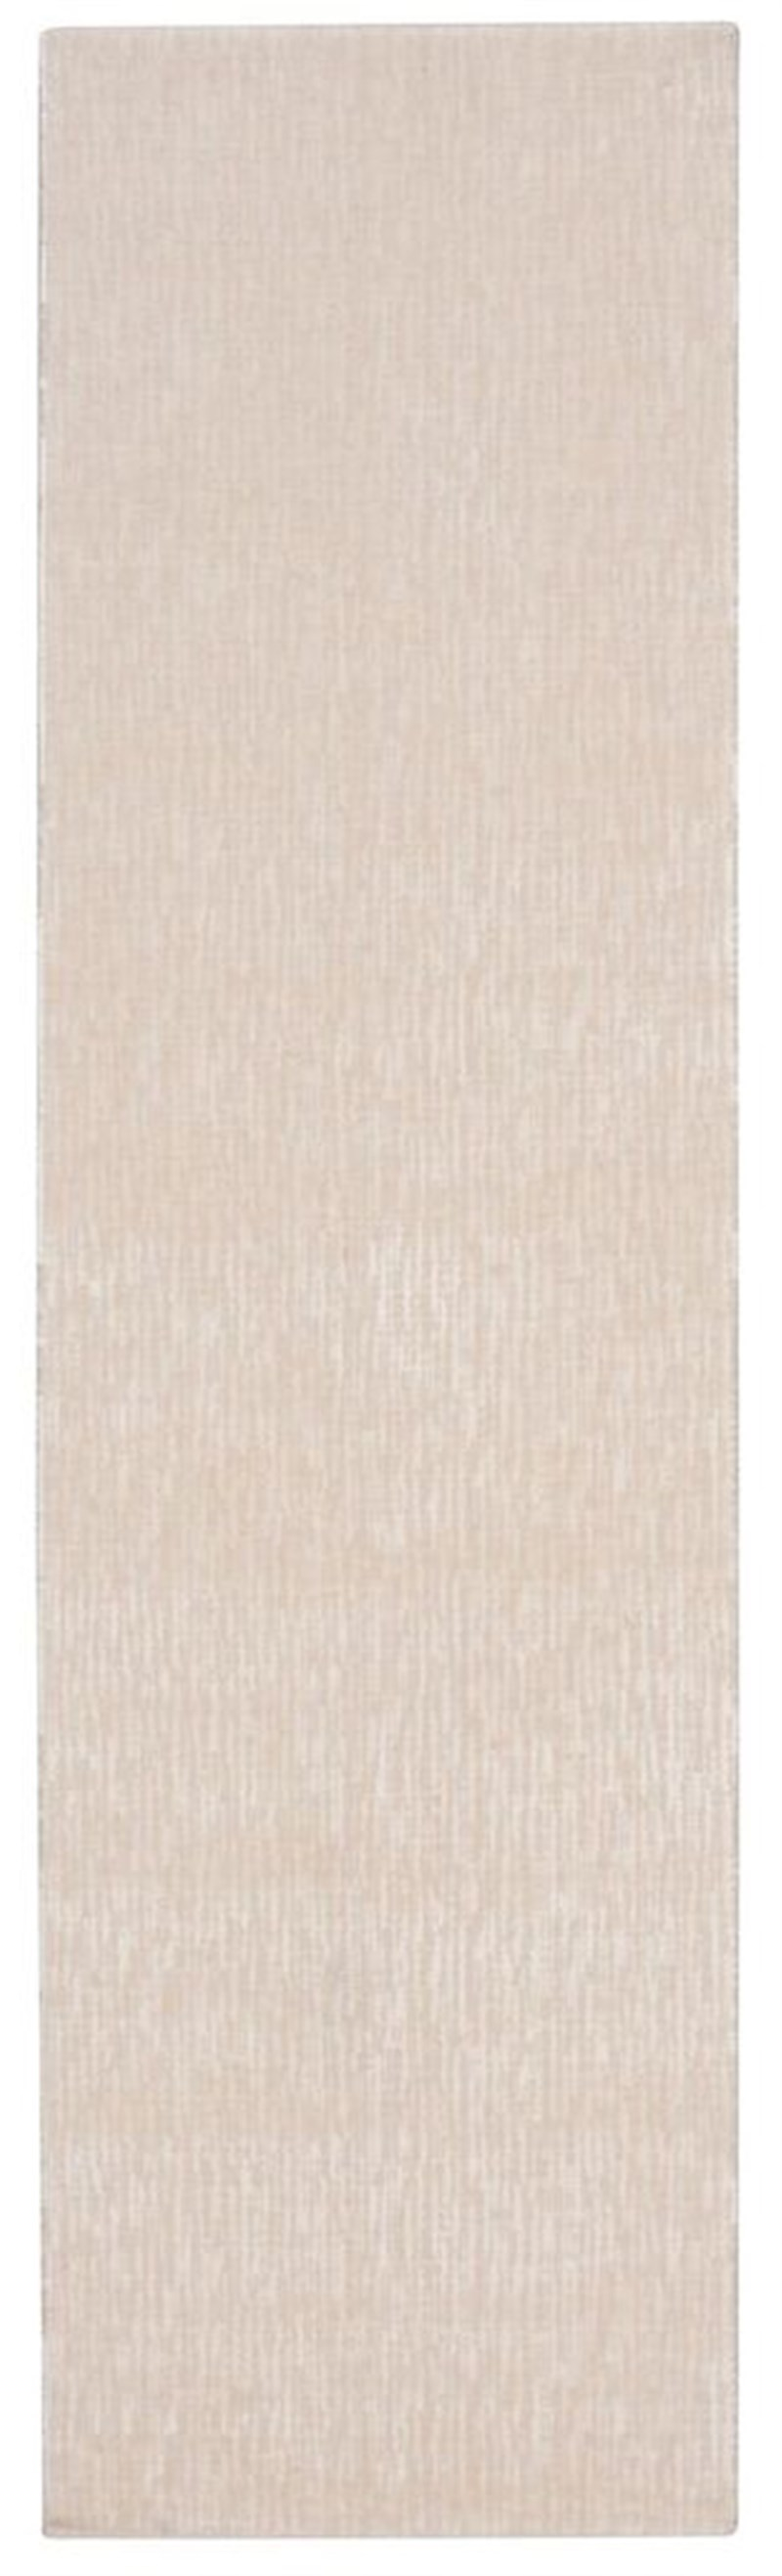 nourison-starlight-morning-area-rug